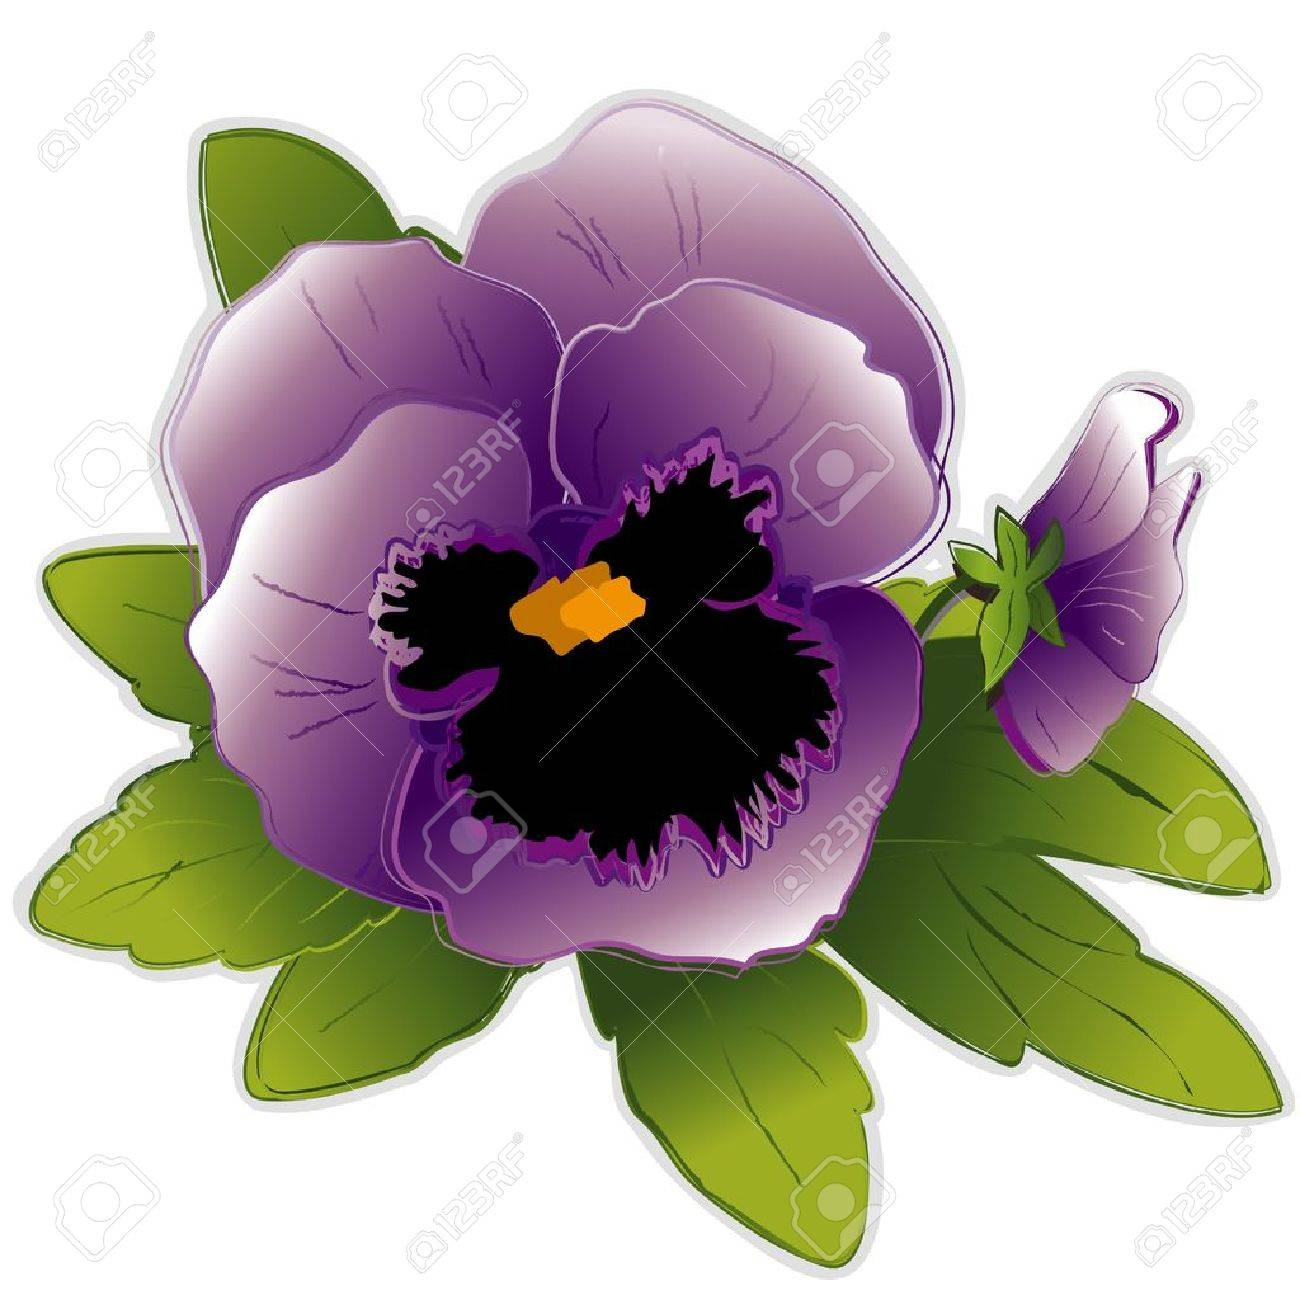 Lavender Pansy Flowers Stock Vector - 12392308